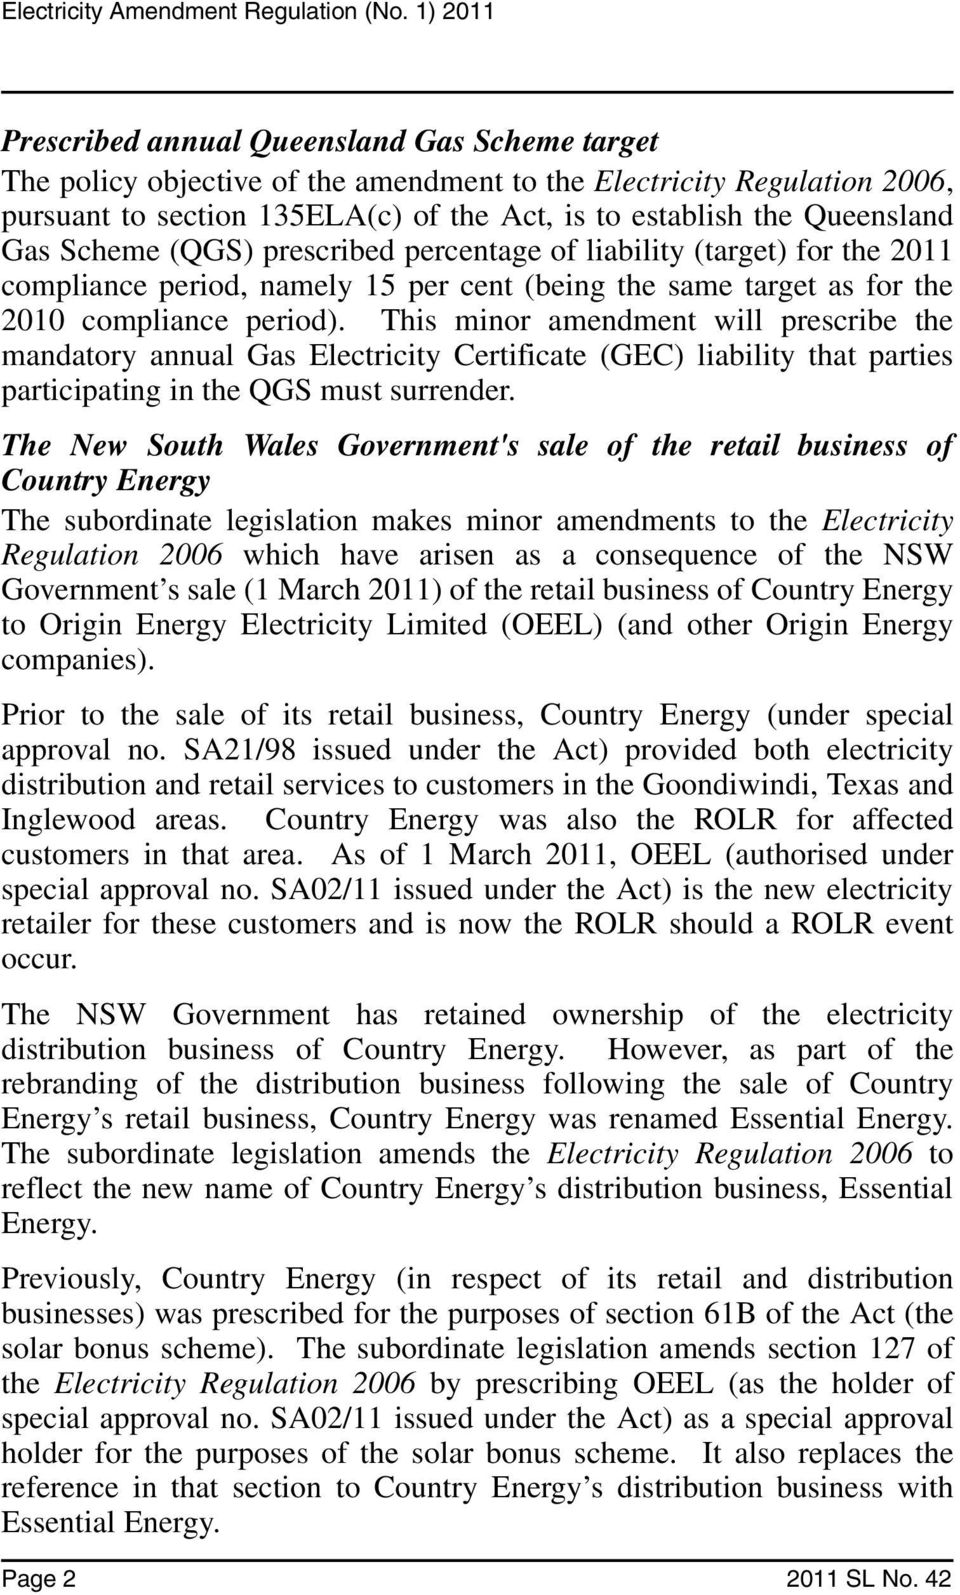 This minor amendment will prescribe the mandatory annual Gas Electricity Certificate (GEC) liability that parties participating in the QGS must surrender.